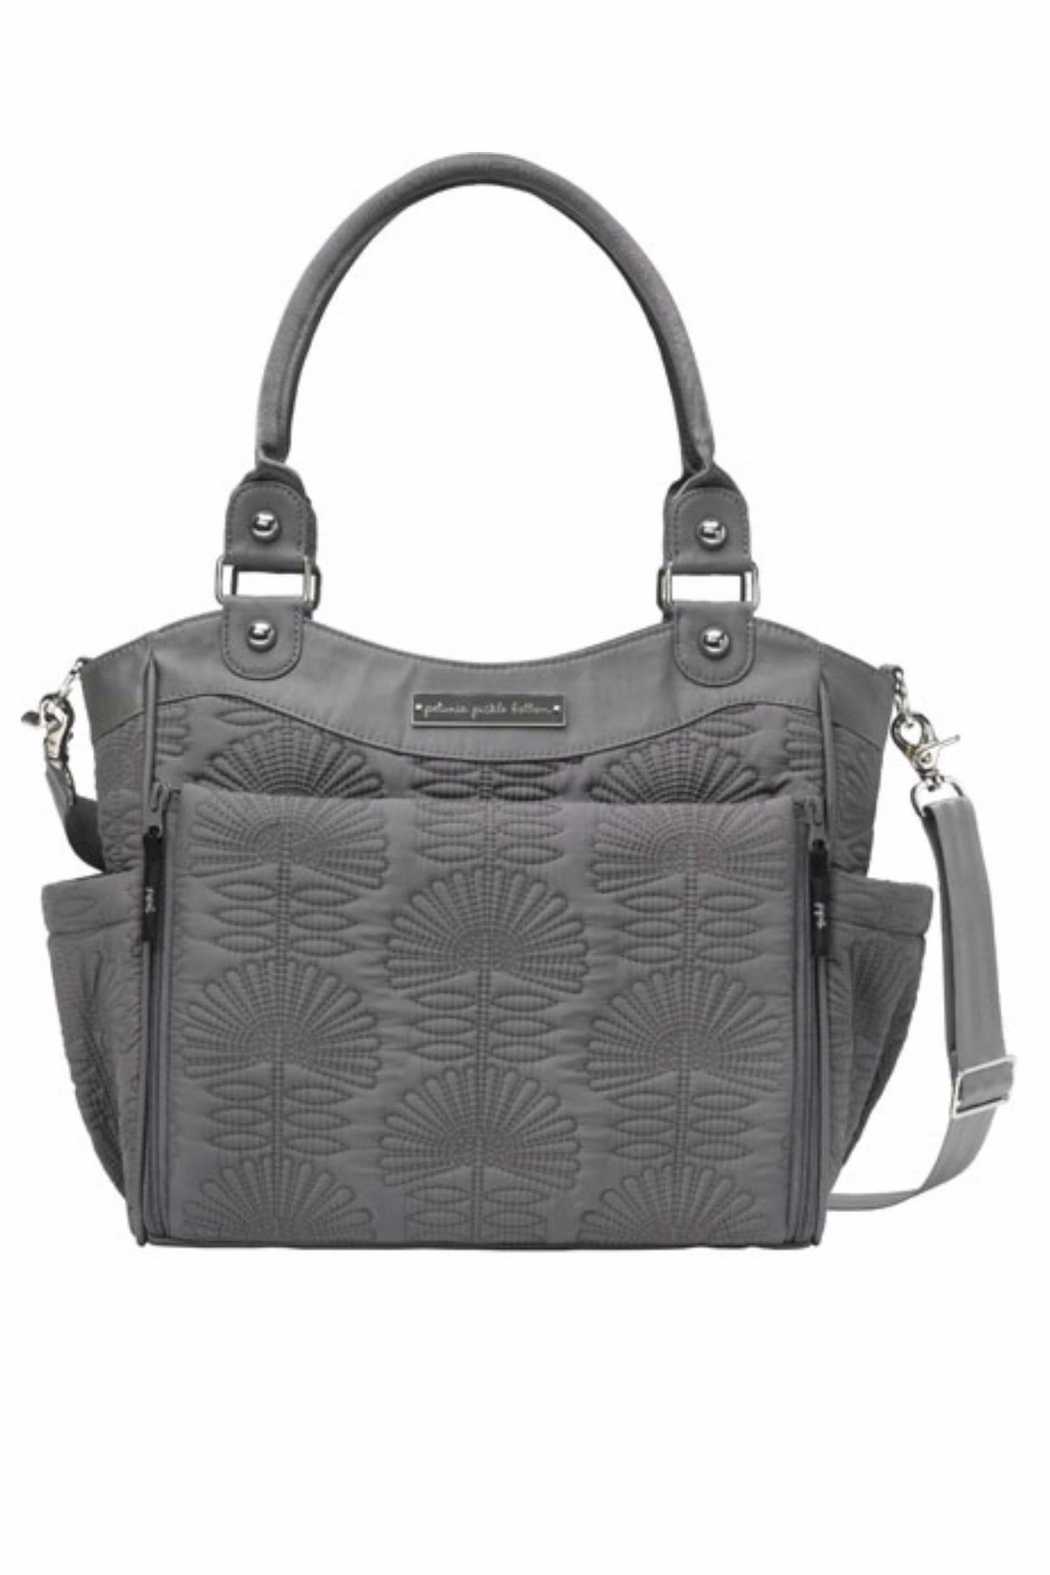 Petunia Pickle Bottom City Carryall Diaper Bag - Main Image